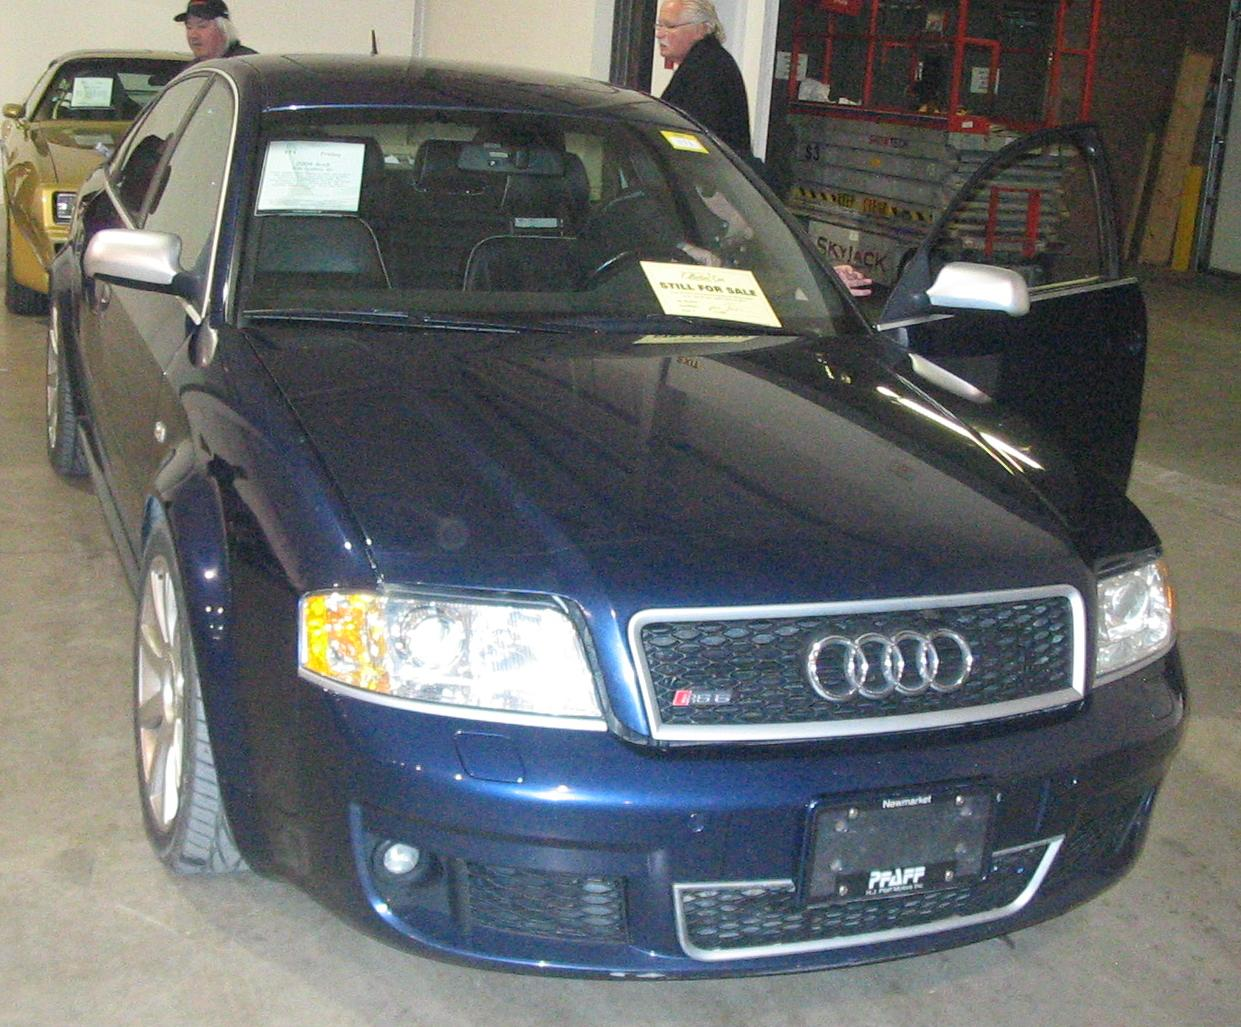 File Audi RS Quattro Toronto Spring Classic Car Auction - Audi car auctions